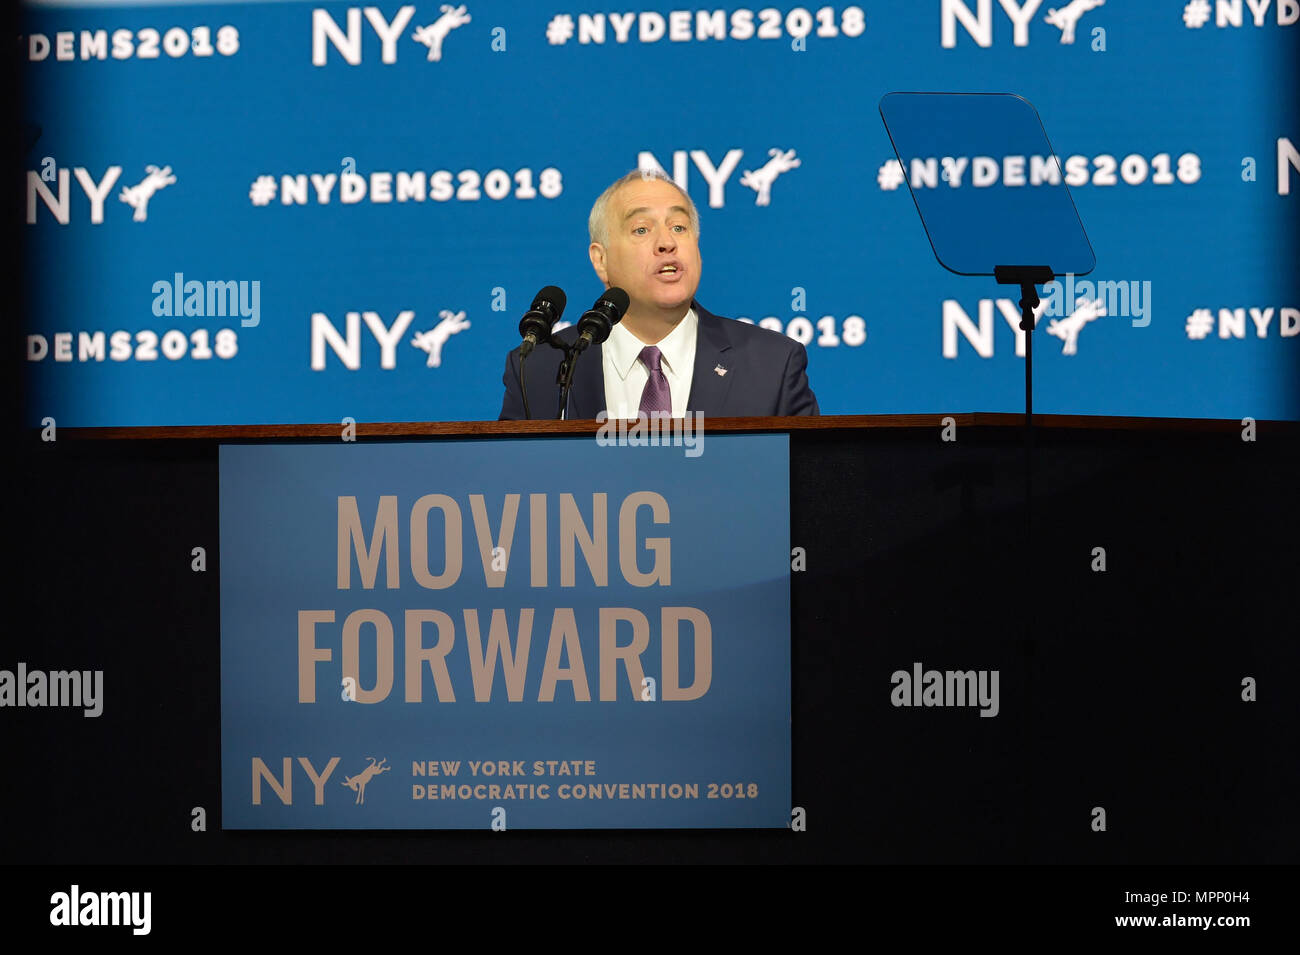 Long Island, USA. 23rd May, 2018. New York State Comptroller THOMAS P. DiNAPOLI gives speech, accepting party nomination, during Day 1 of New York State Democratic Convention, held at Hofstra University on Long Island. MOVING FORWARD slogan is on poster. Credit: Ann E Parry/Alamy Live News Stock Photo